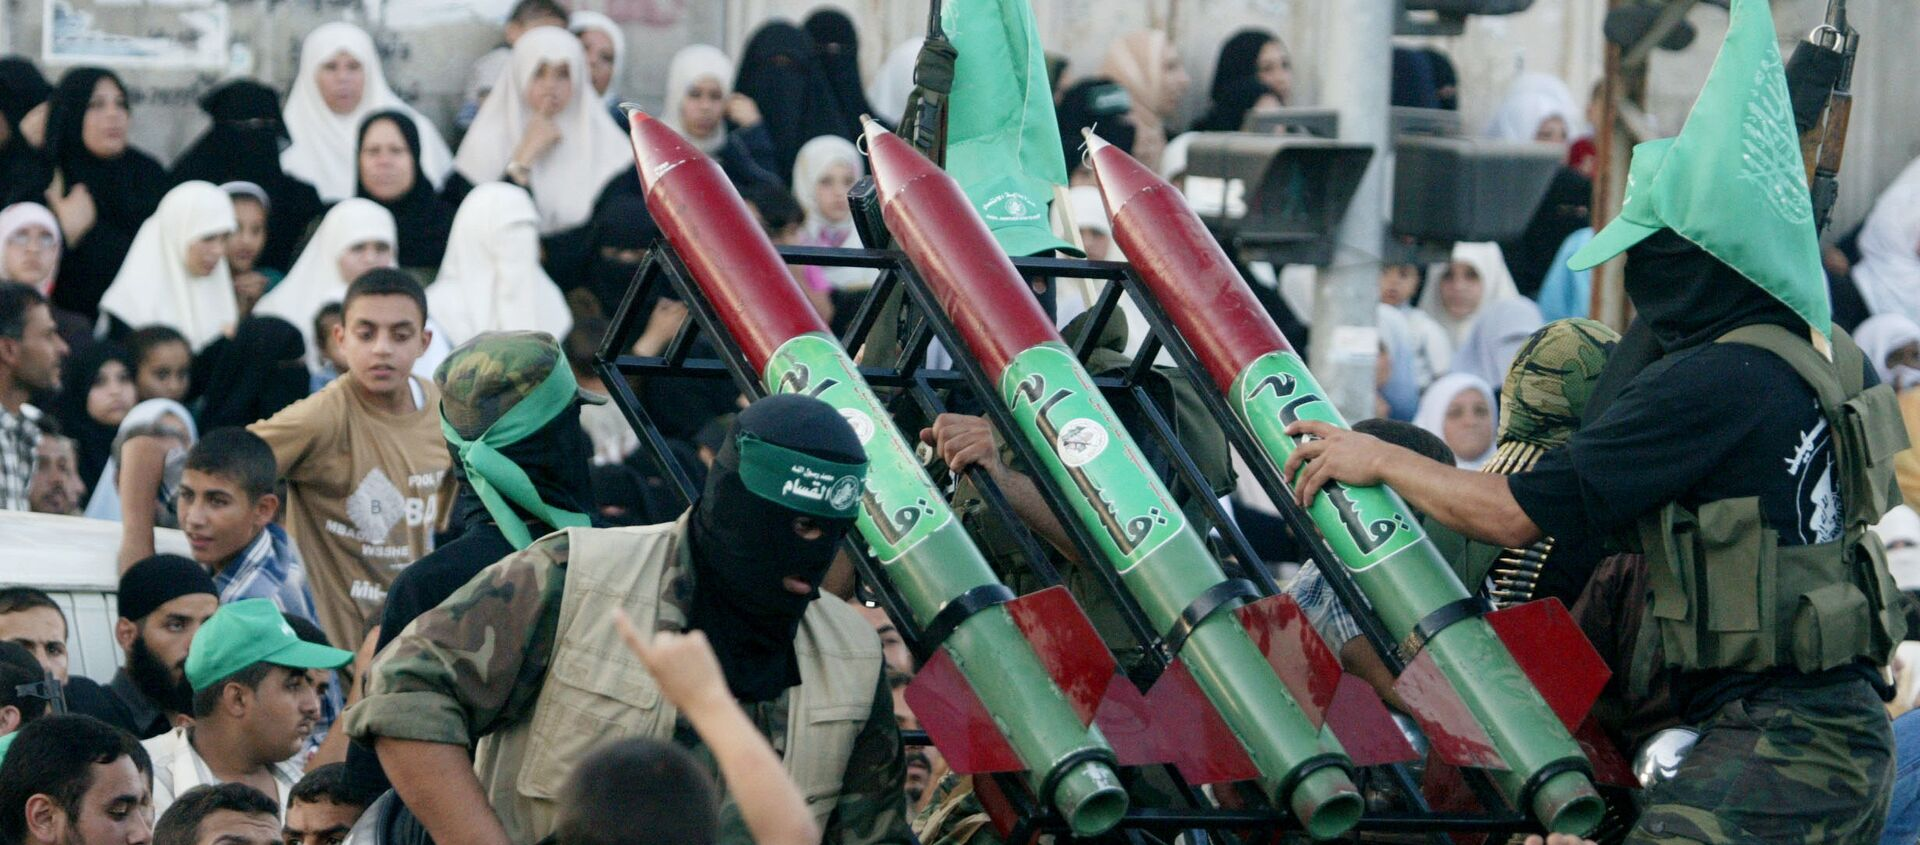 Masked Palestinian Hamas militants display their weapons during a parade in Gaza City. File photo. - Sputnik International, 1920, 15.05.2021